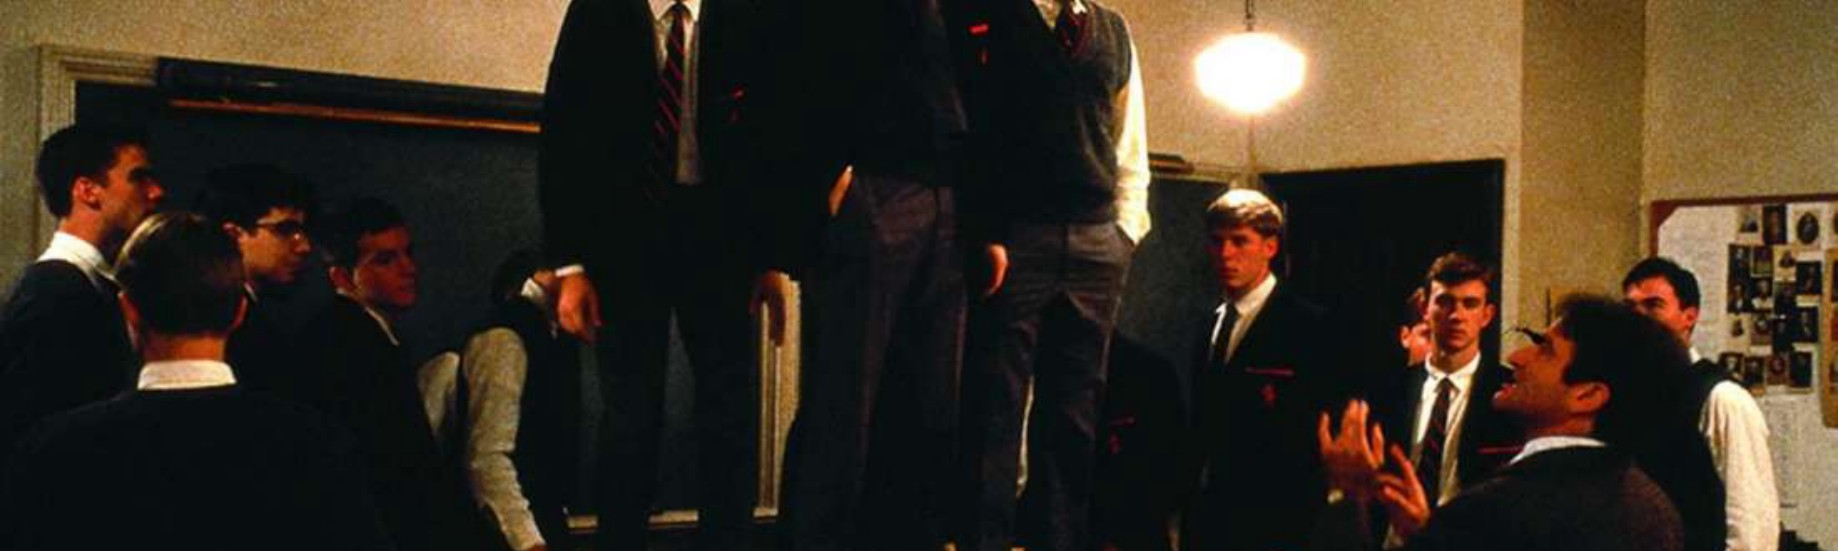 dead poets society full movie download 720p